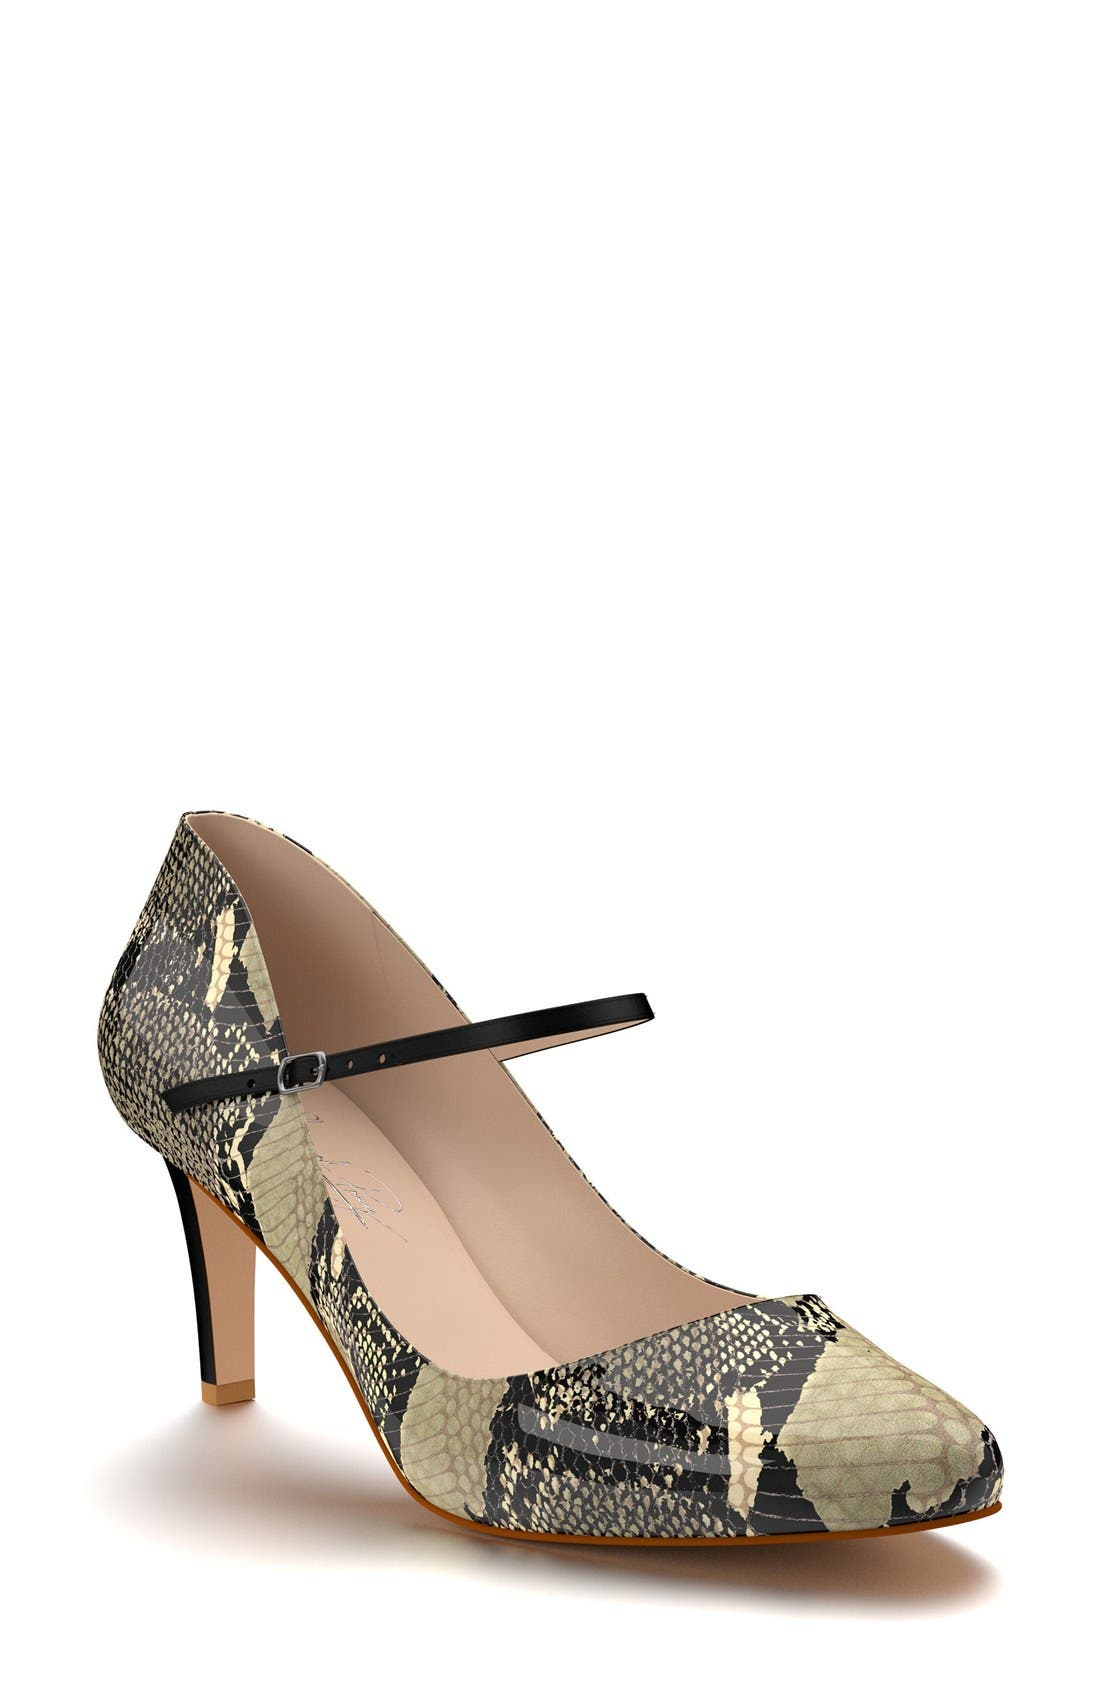 Mary Jane Pump,                             Main thumbnail 1, color,                             Beige Snake Print Leather